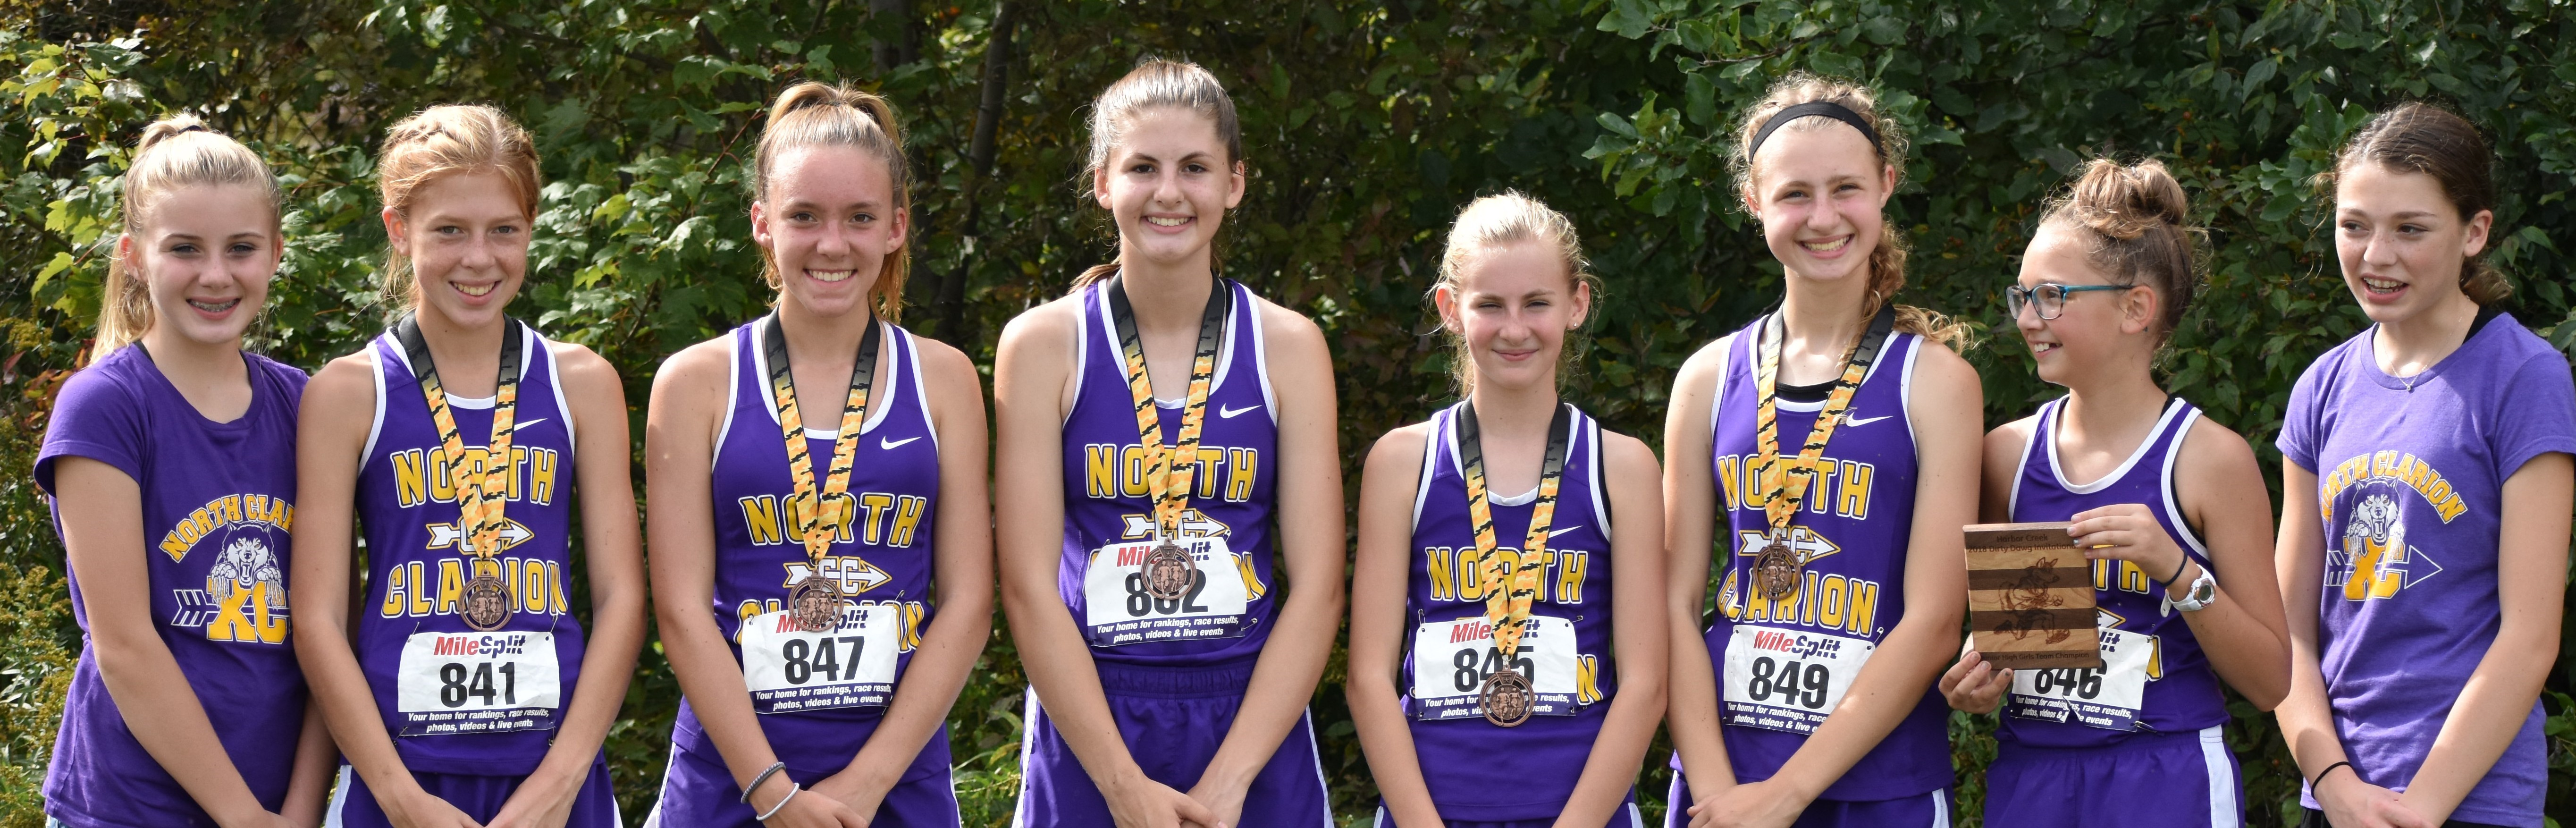 North Clarion junior high girls' team. Left to Right:  Ava Best, Katie Bauer, Kylie Disney, Maddie Homan, Emma Buckley, Nicole Fair, Kaylee Castner, Brynn Siegel.  Not in photo is Akeela Greenawalt